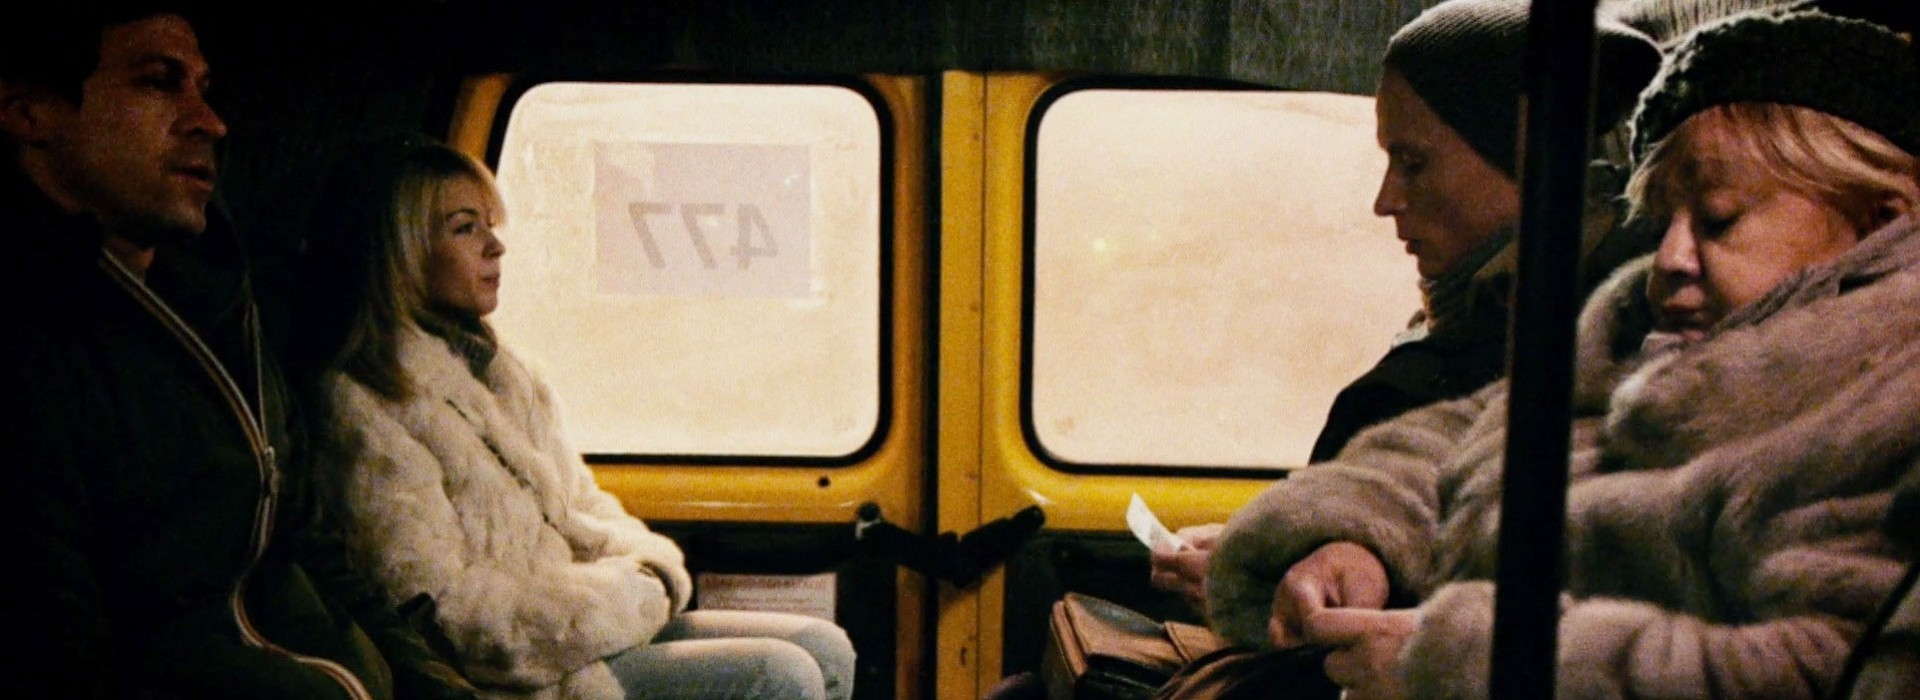 Fellow travellers: feel the chill of the Moscow winter in the first of our monthly short films